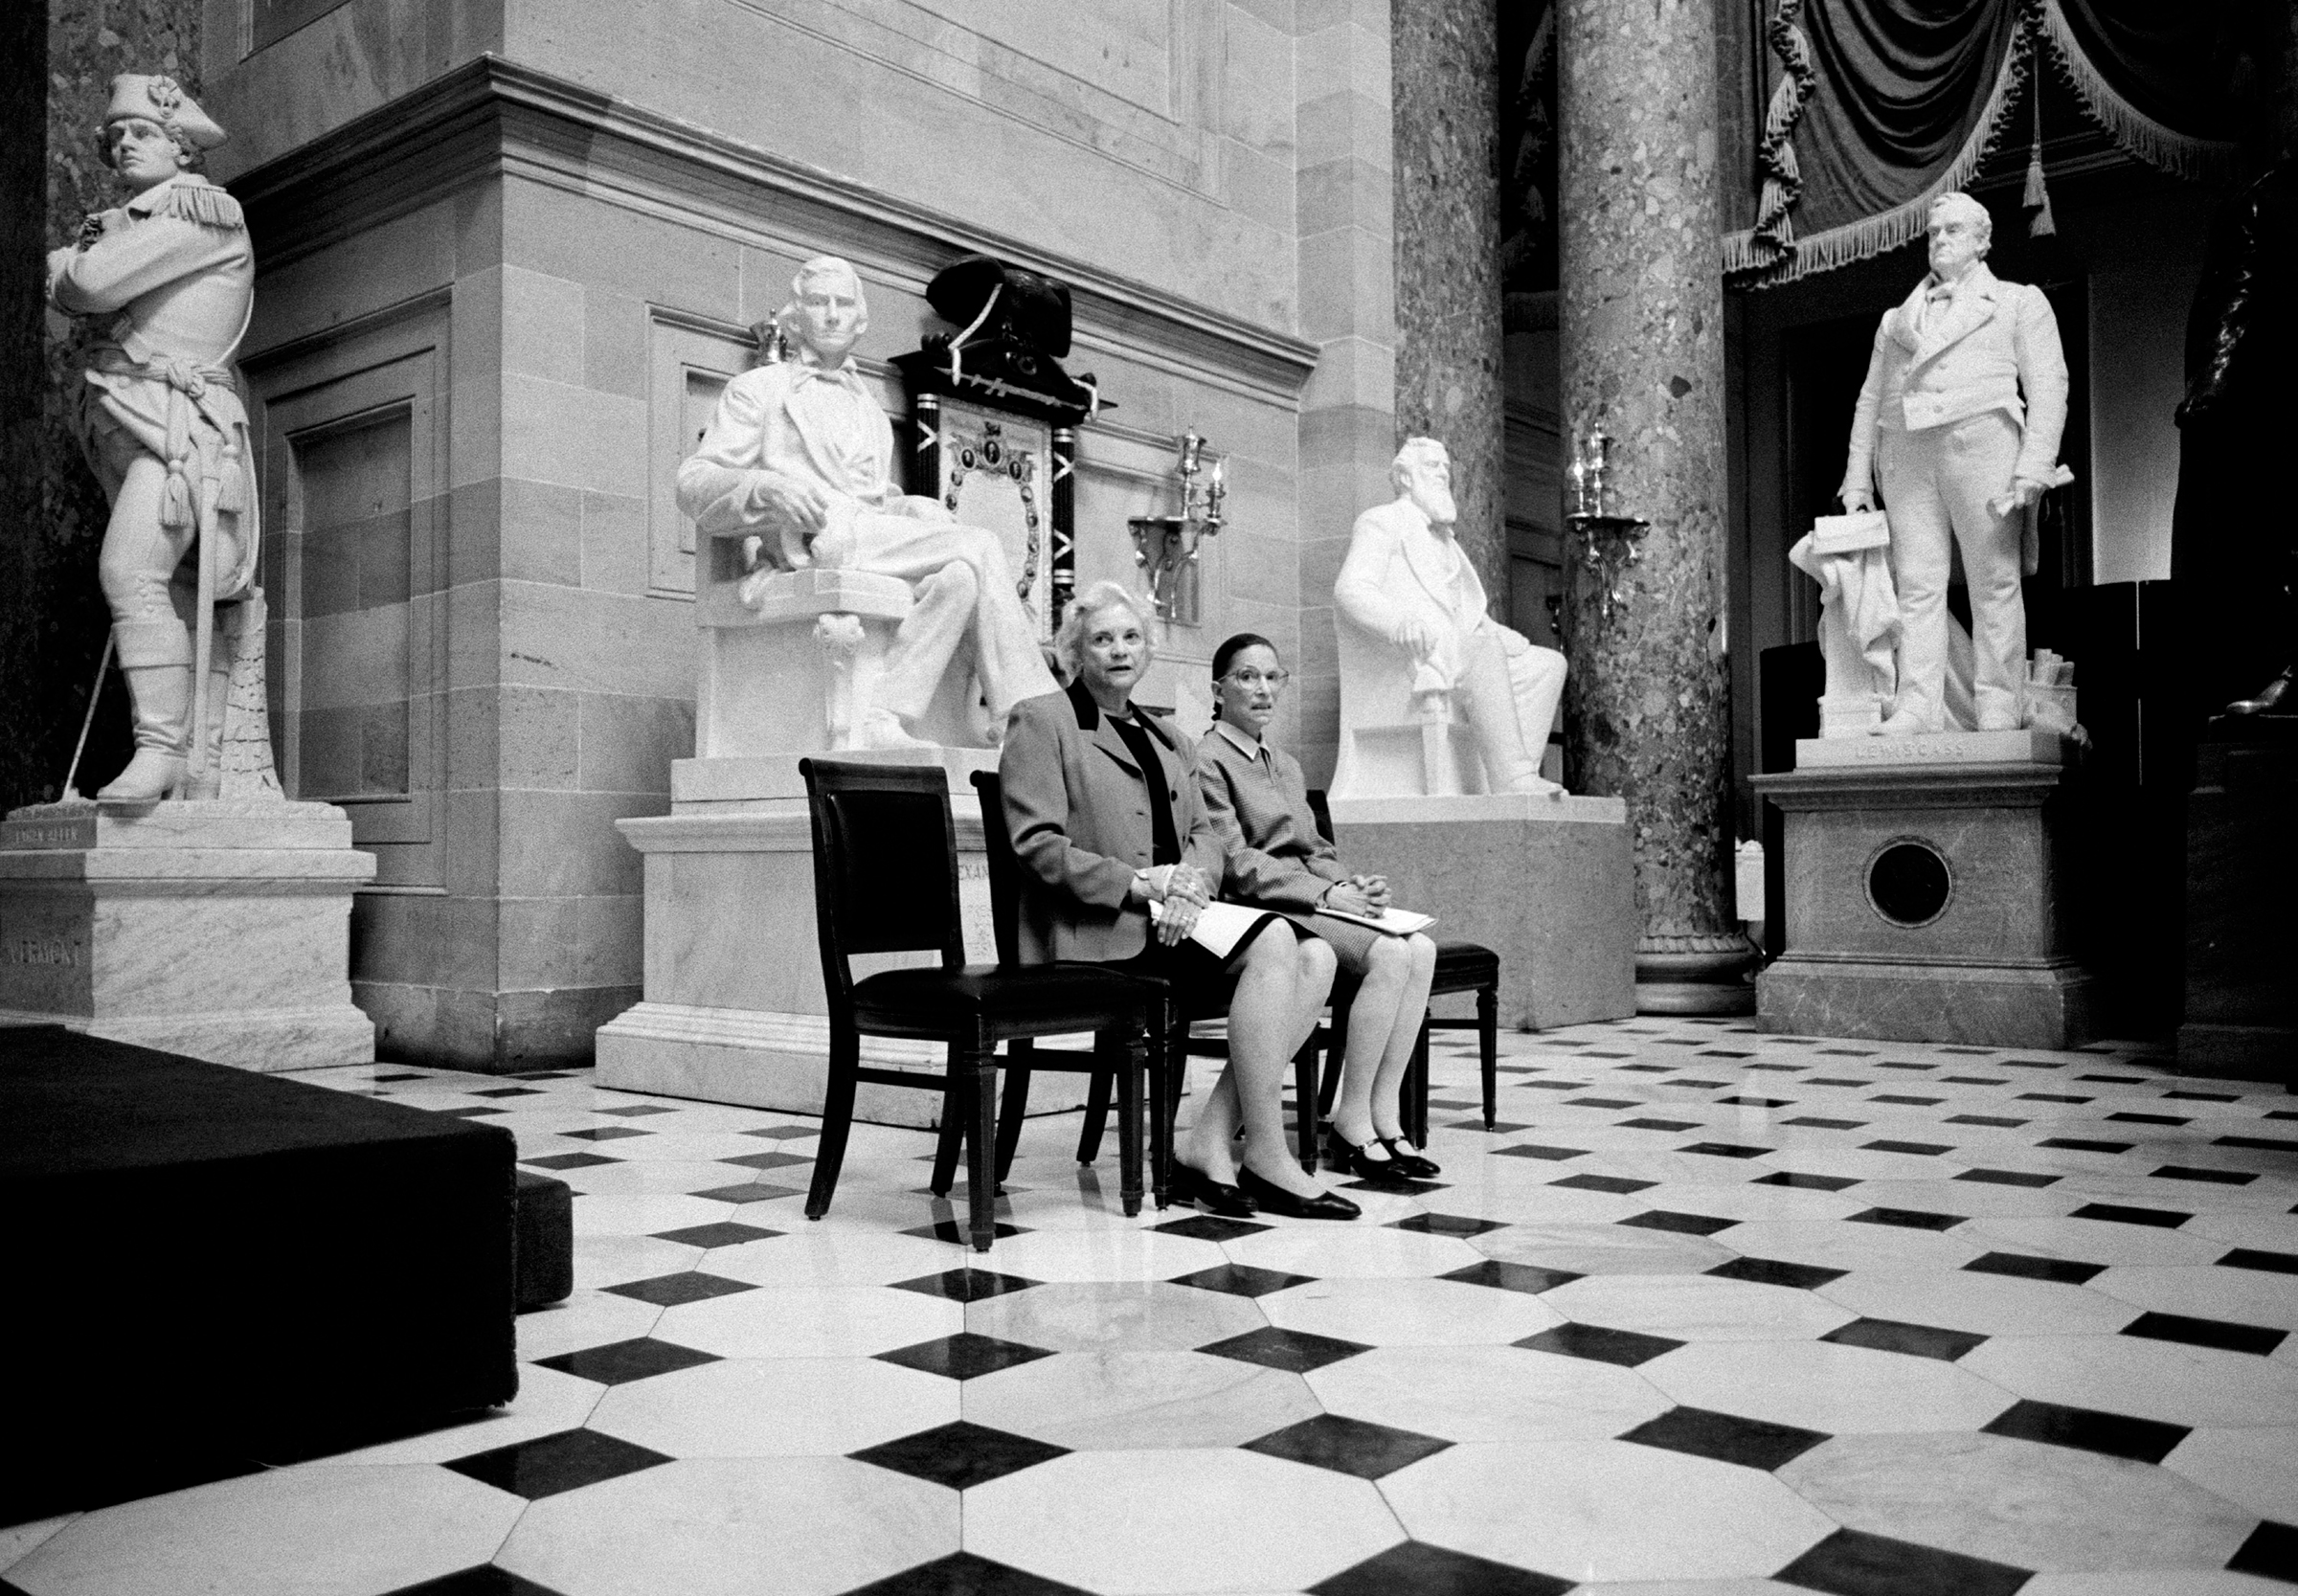 March 2001 The only two female Justices of the U.S. Supreme Court, Sandra Day O'Connor and Ruth Bader Ginsburg, pose for a portrait in Statuary Hall, surrounded by statues of men at the U.S. Capitol Building in Washington, D.C. The two Justices were preparing to address a meeting of the Congressional Women's Caucus.